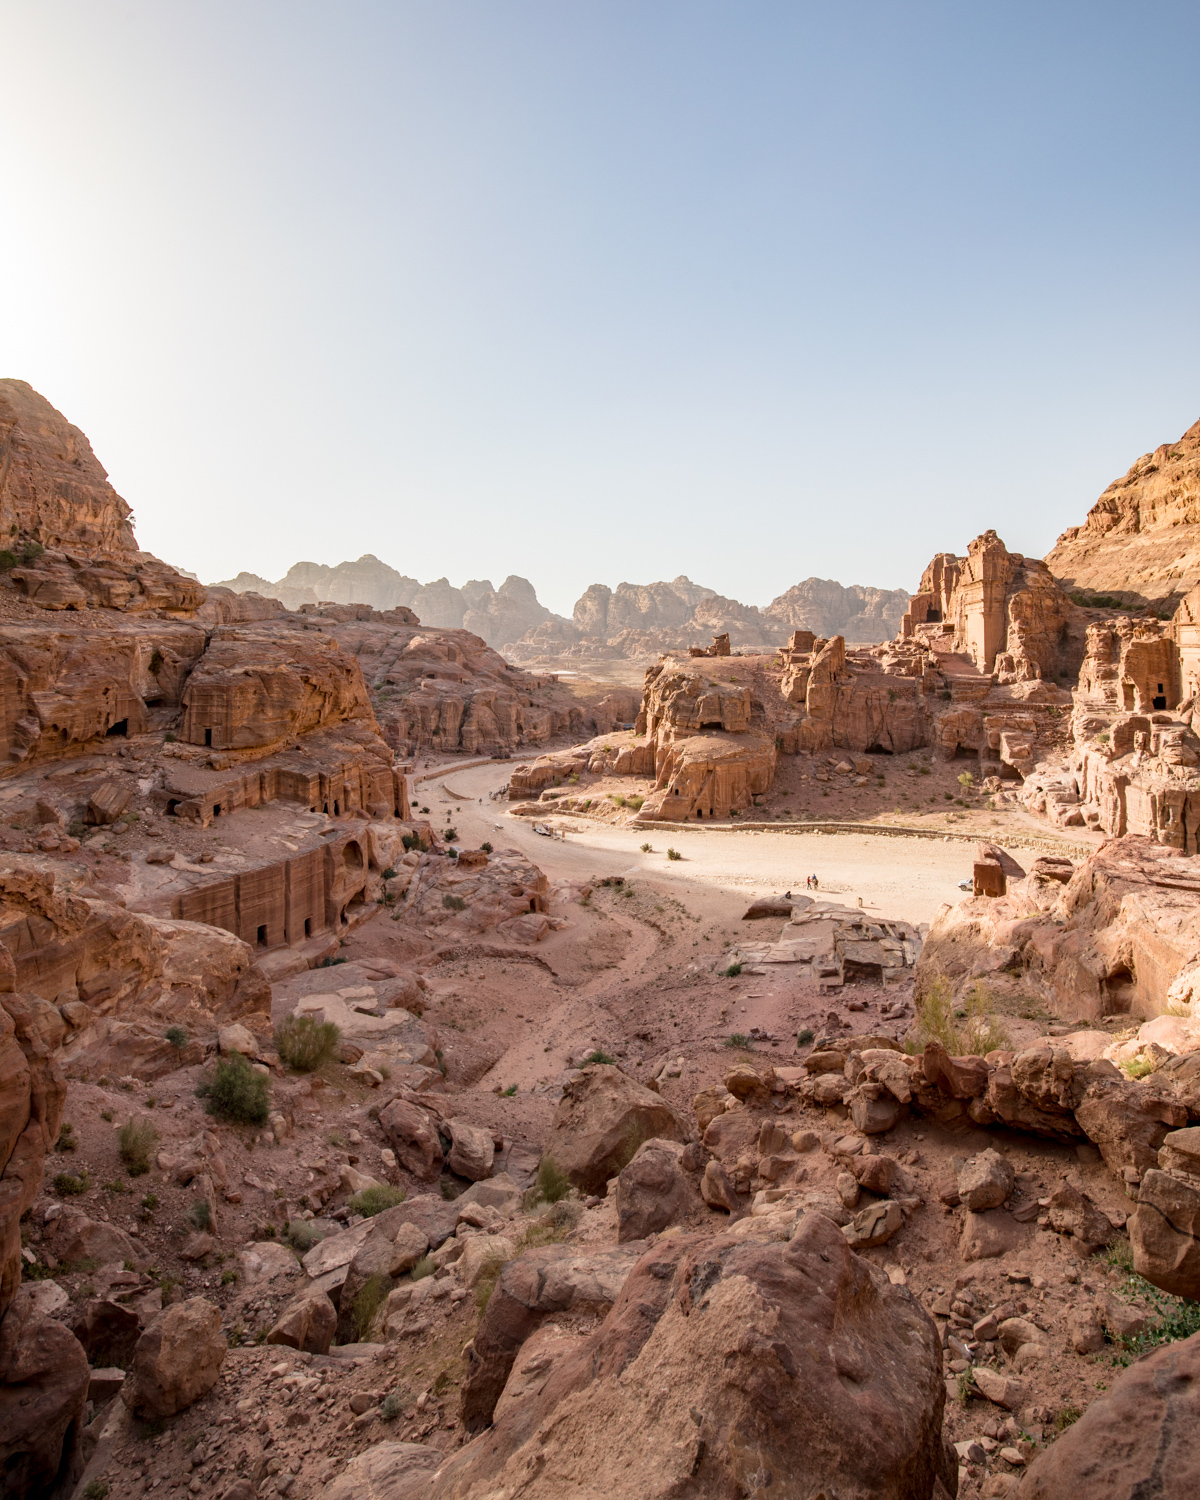 The ruins of the ancient city of Petra